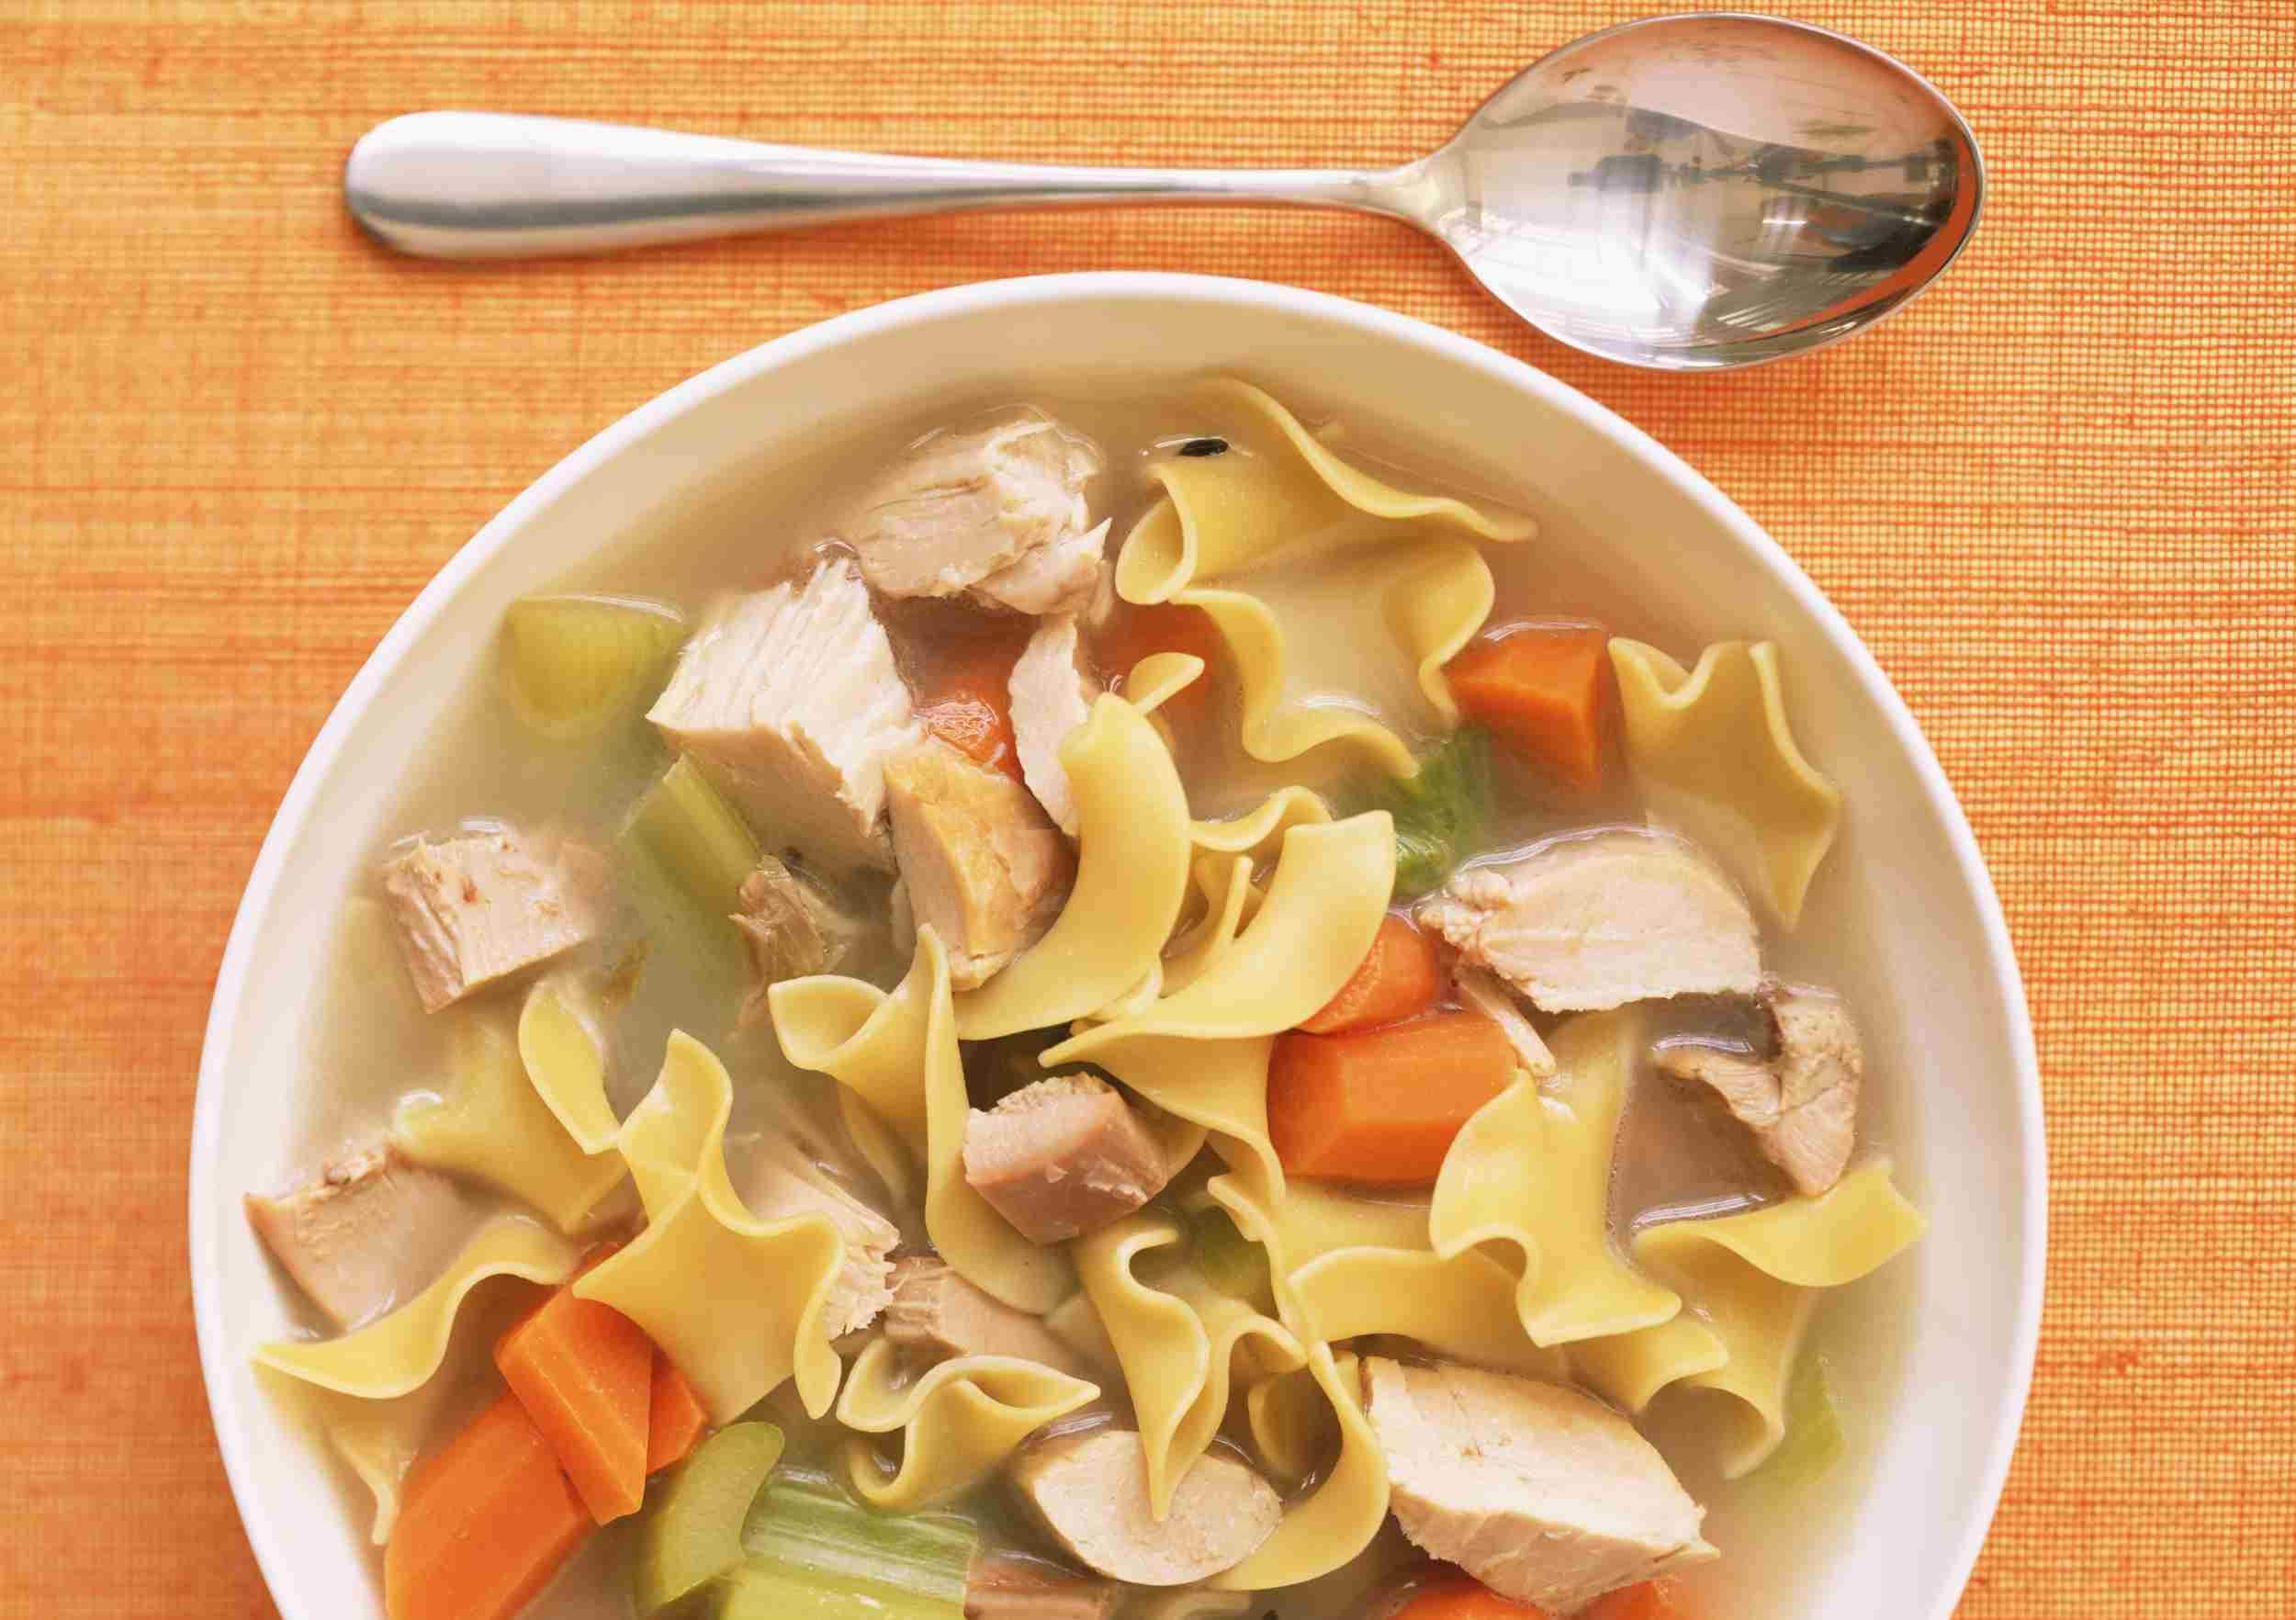 Turkey Noodle Soup Recipe Using Leftover Turkey Carcass